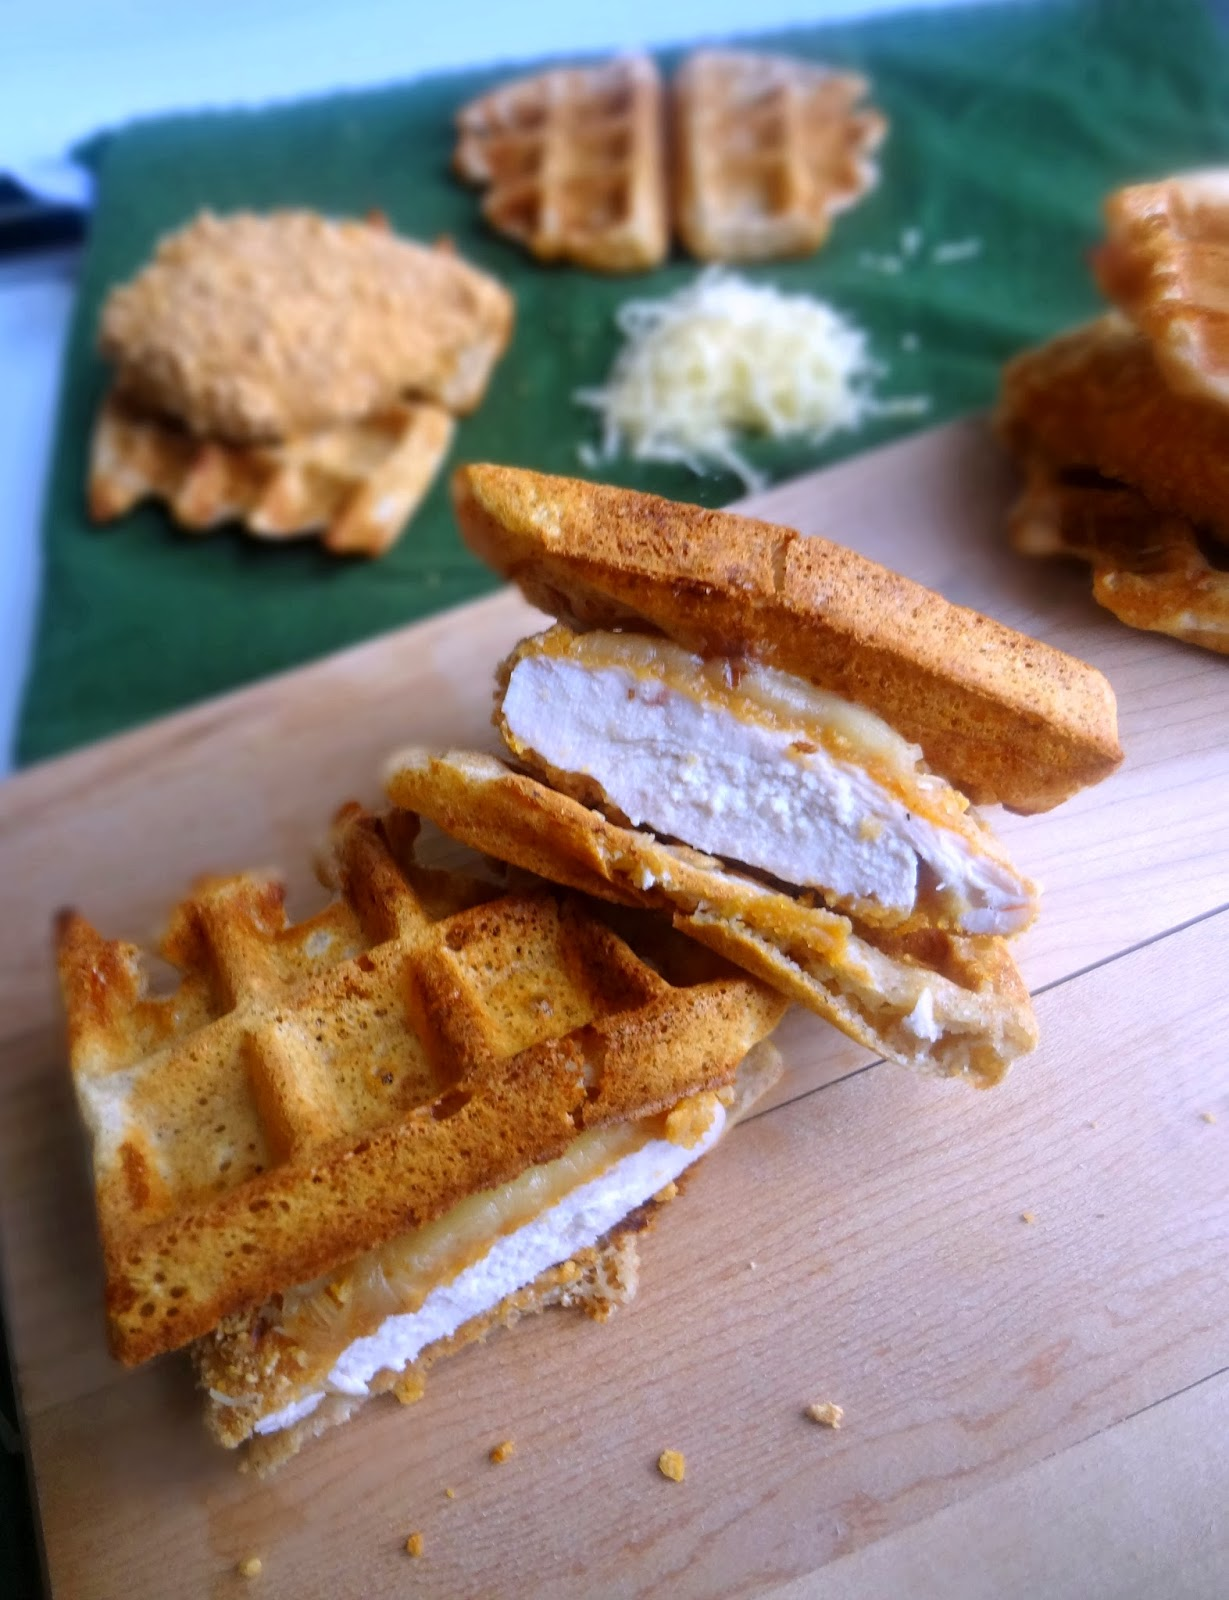 savory waffles with baked crunchy chicken and cheese of course